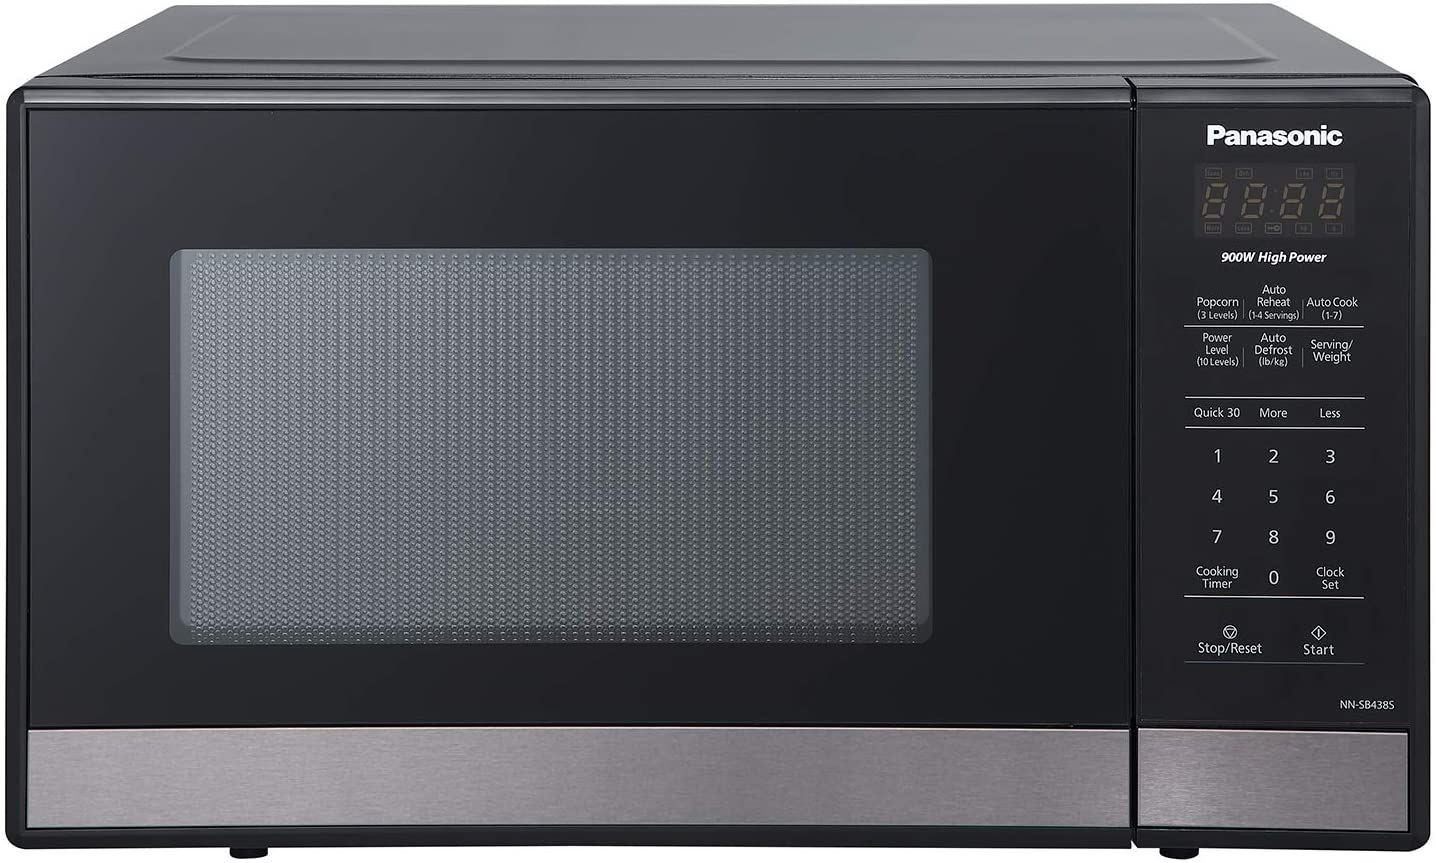 Best Chicken In Toaster Oven 2020 Review In 2020 Toaster Oven